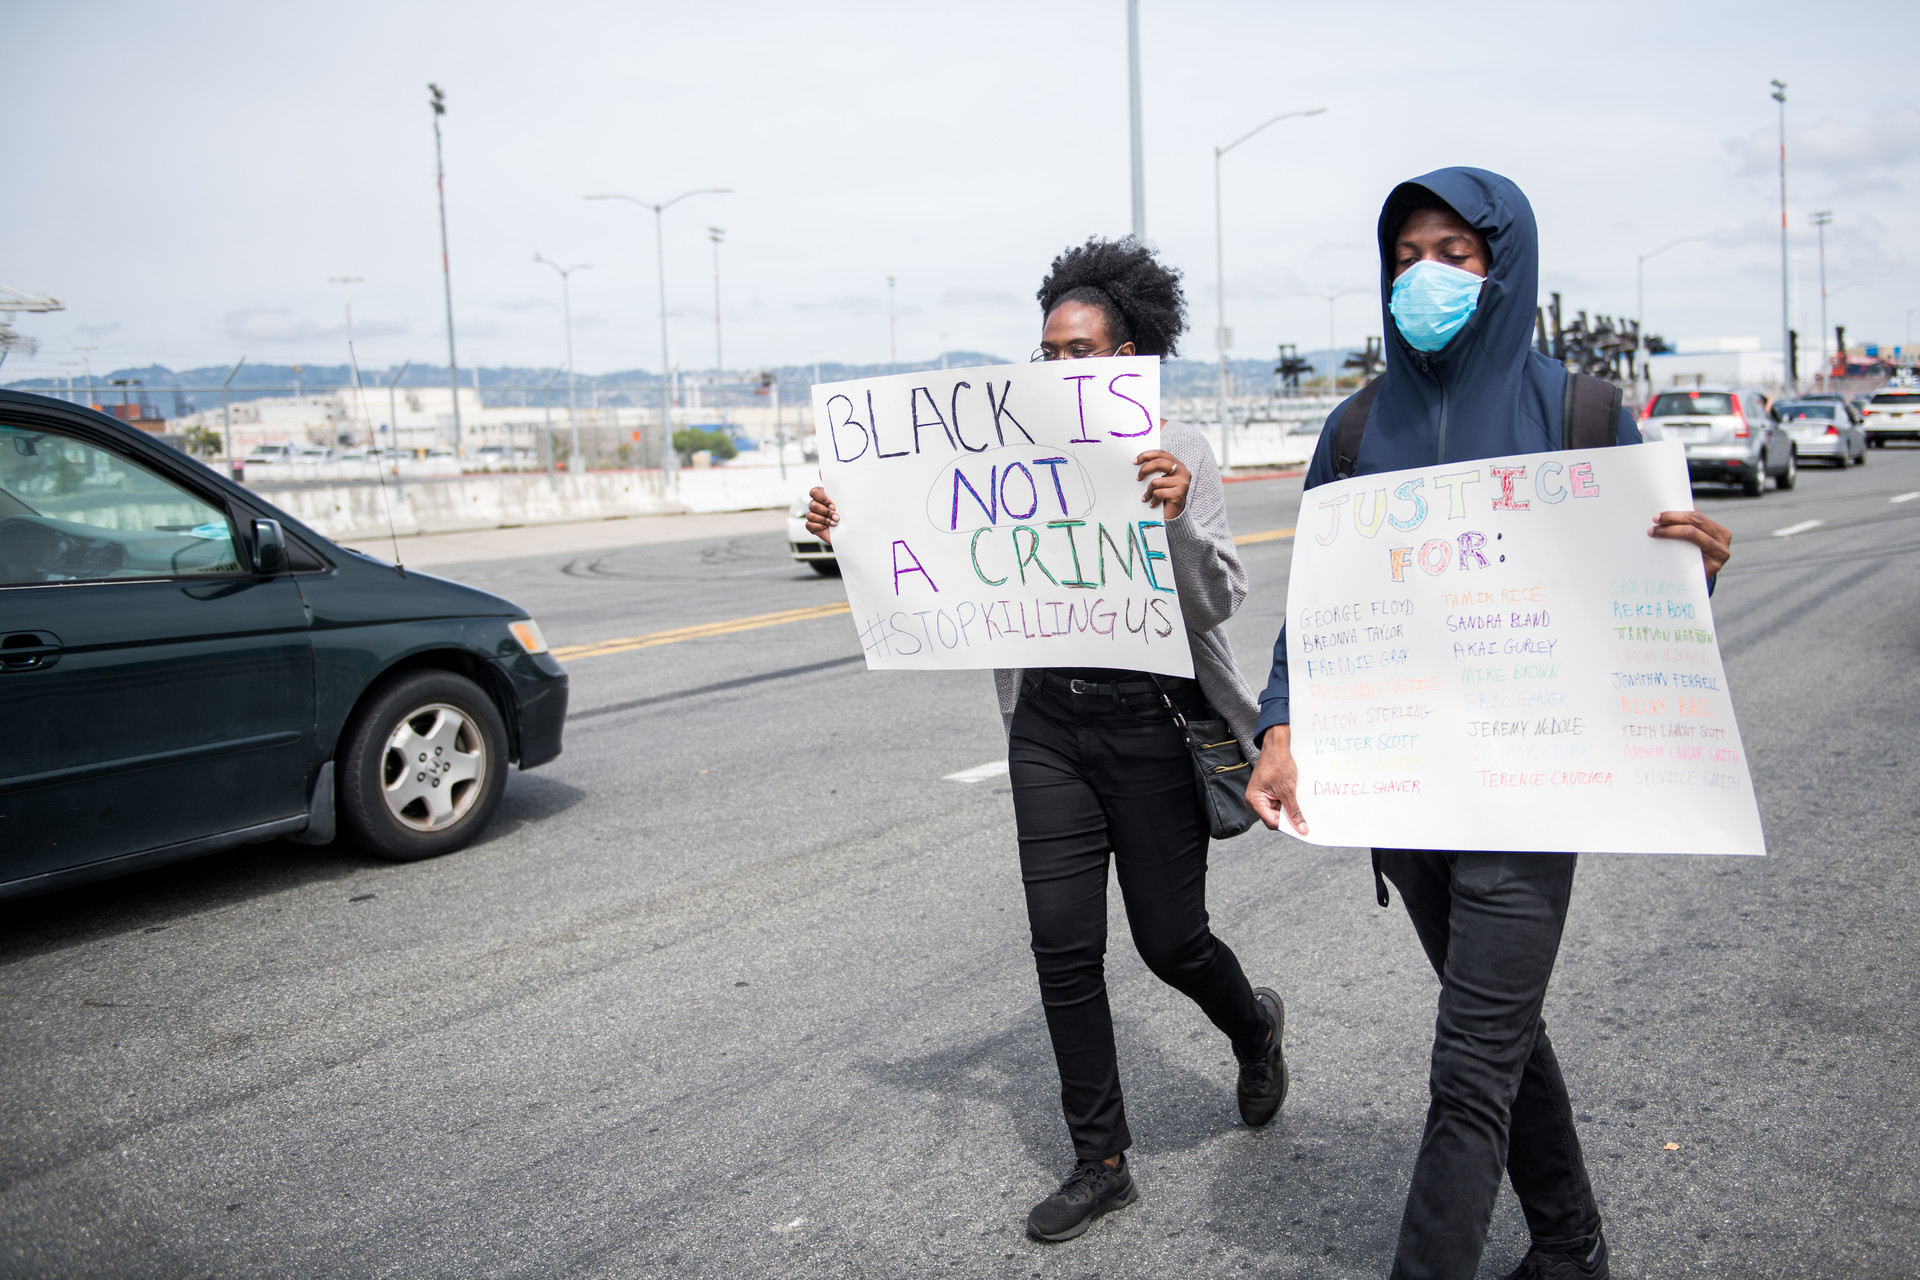 Demonstrators on foot joined thousands of vehicles lined up at the Port of Oakland before departing for Lake Merritt on Sunday.